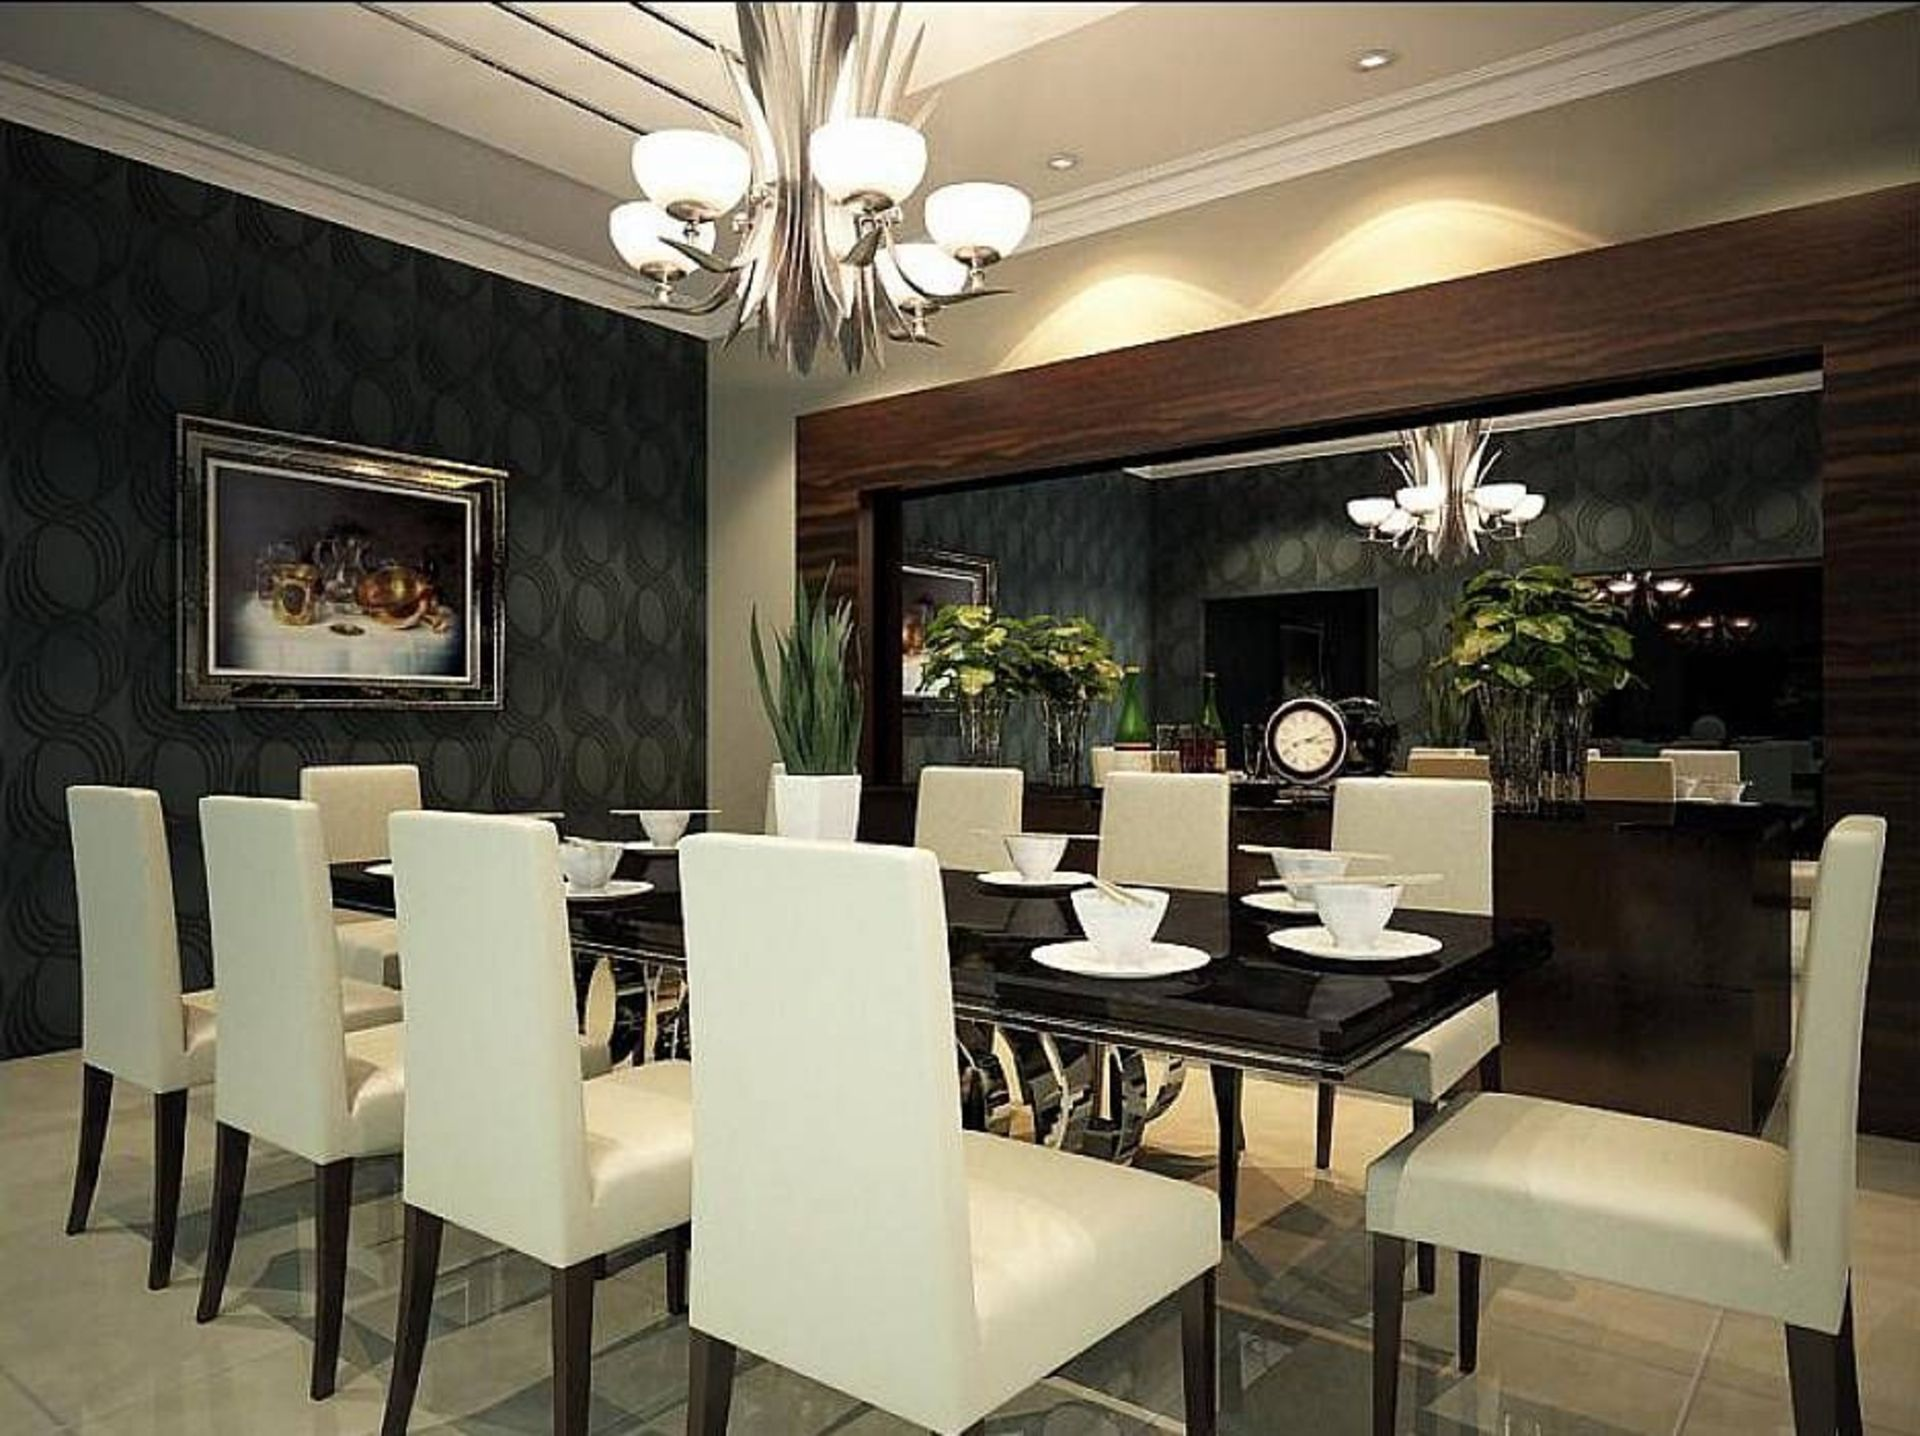 Décor For Formal Dining Room Designs  Room Black Wallpaper And Captivating Decorating Ideas For Dining Room Table Decorating Inspiration